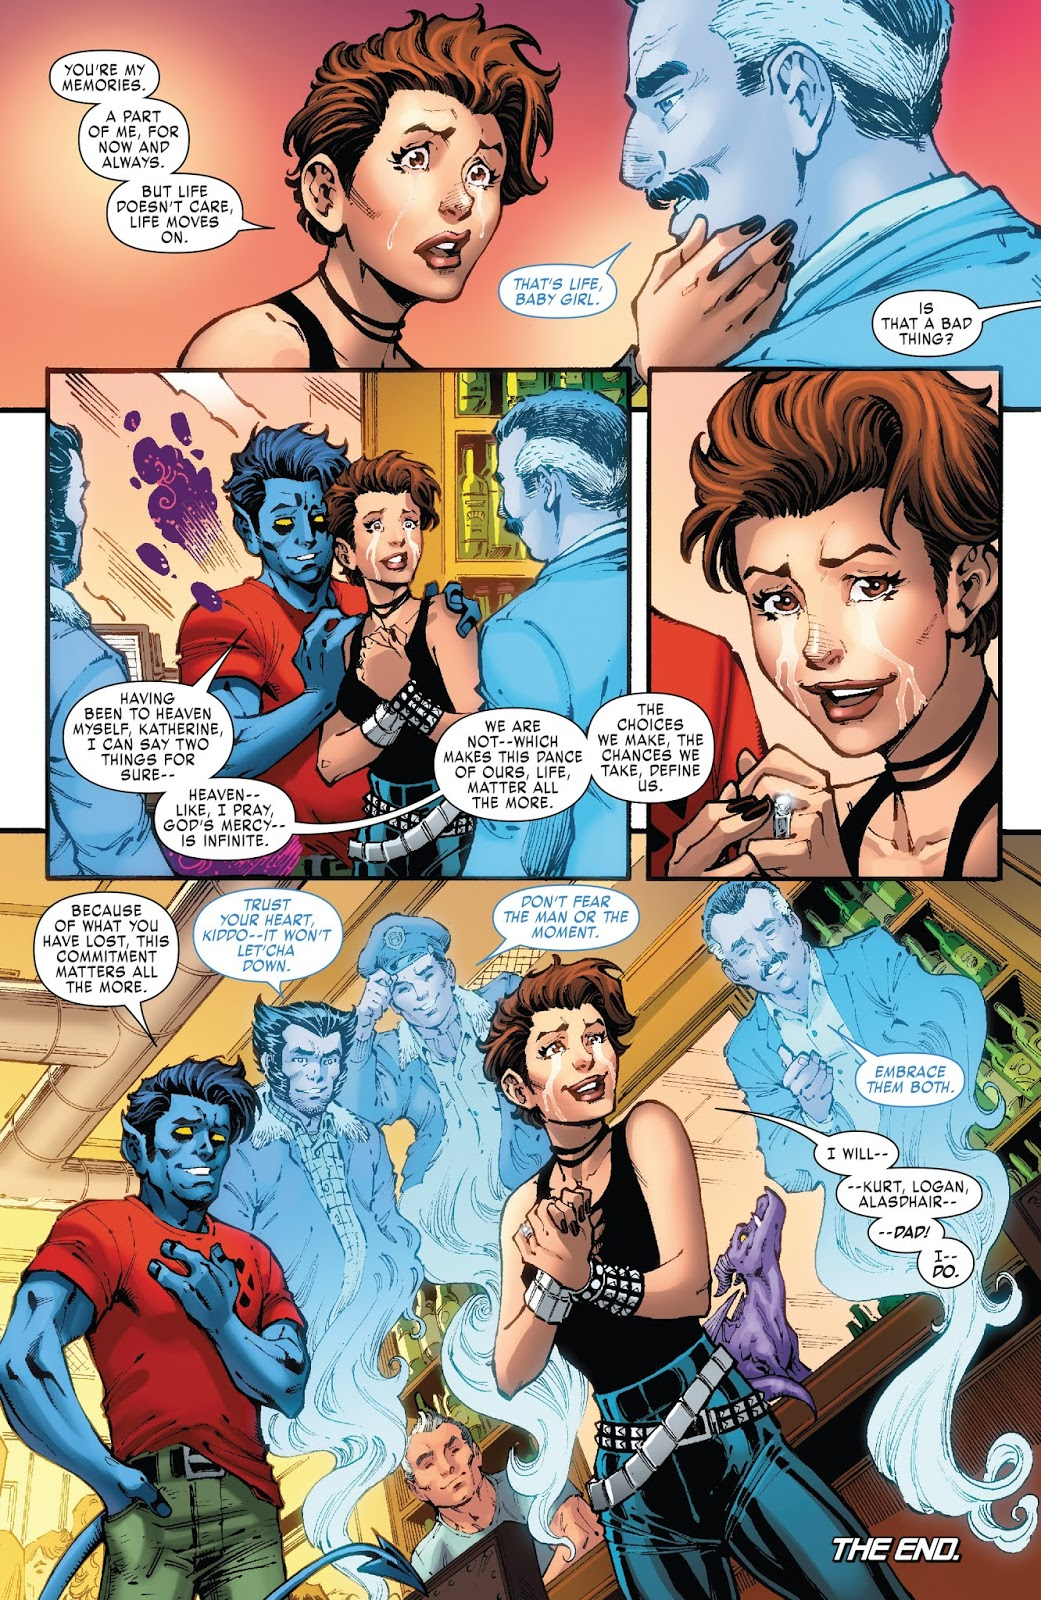 Kitty Pryde And Colossus Love Story – Comicnewbies |Shadowcat And Colossus Child